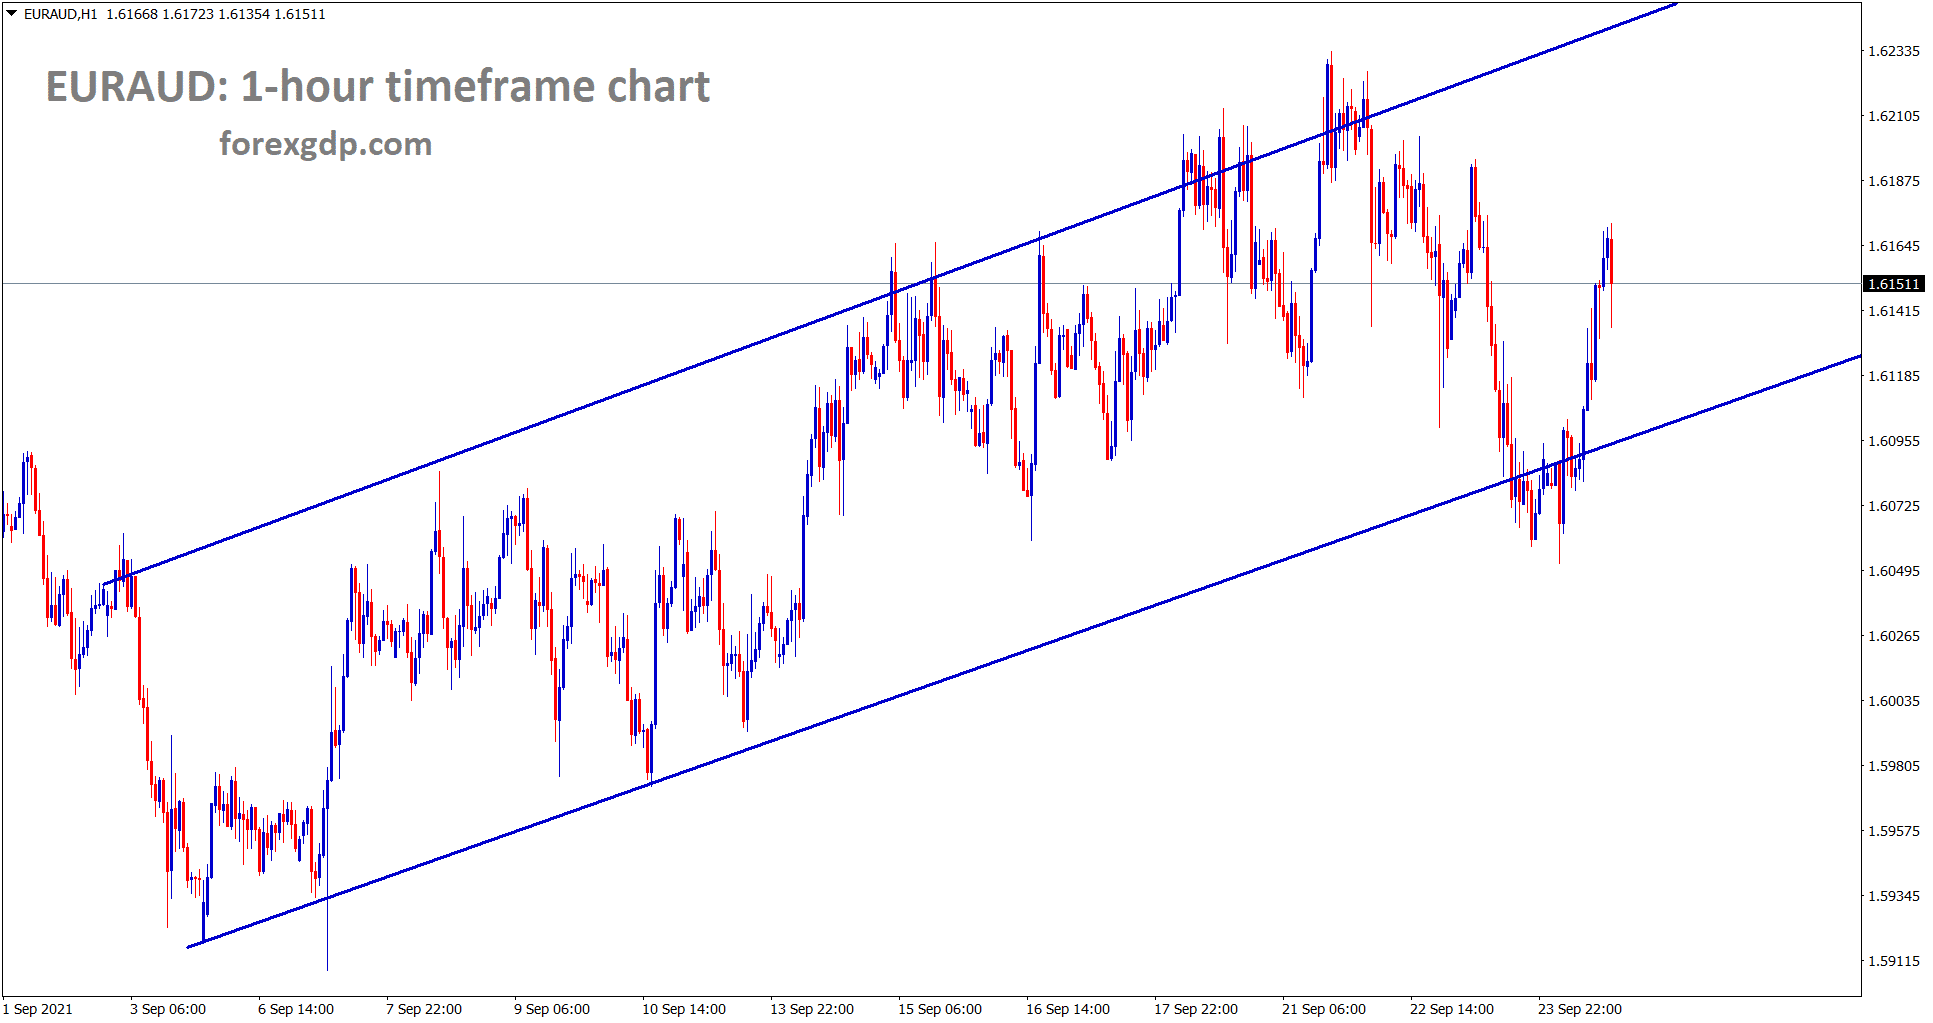 EURAUD is moving in an Ascending channel